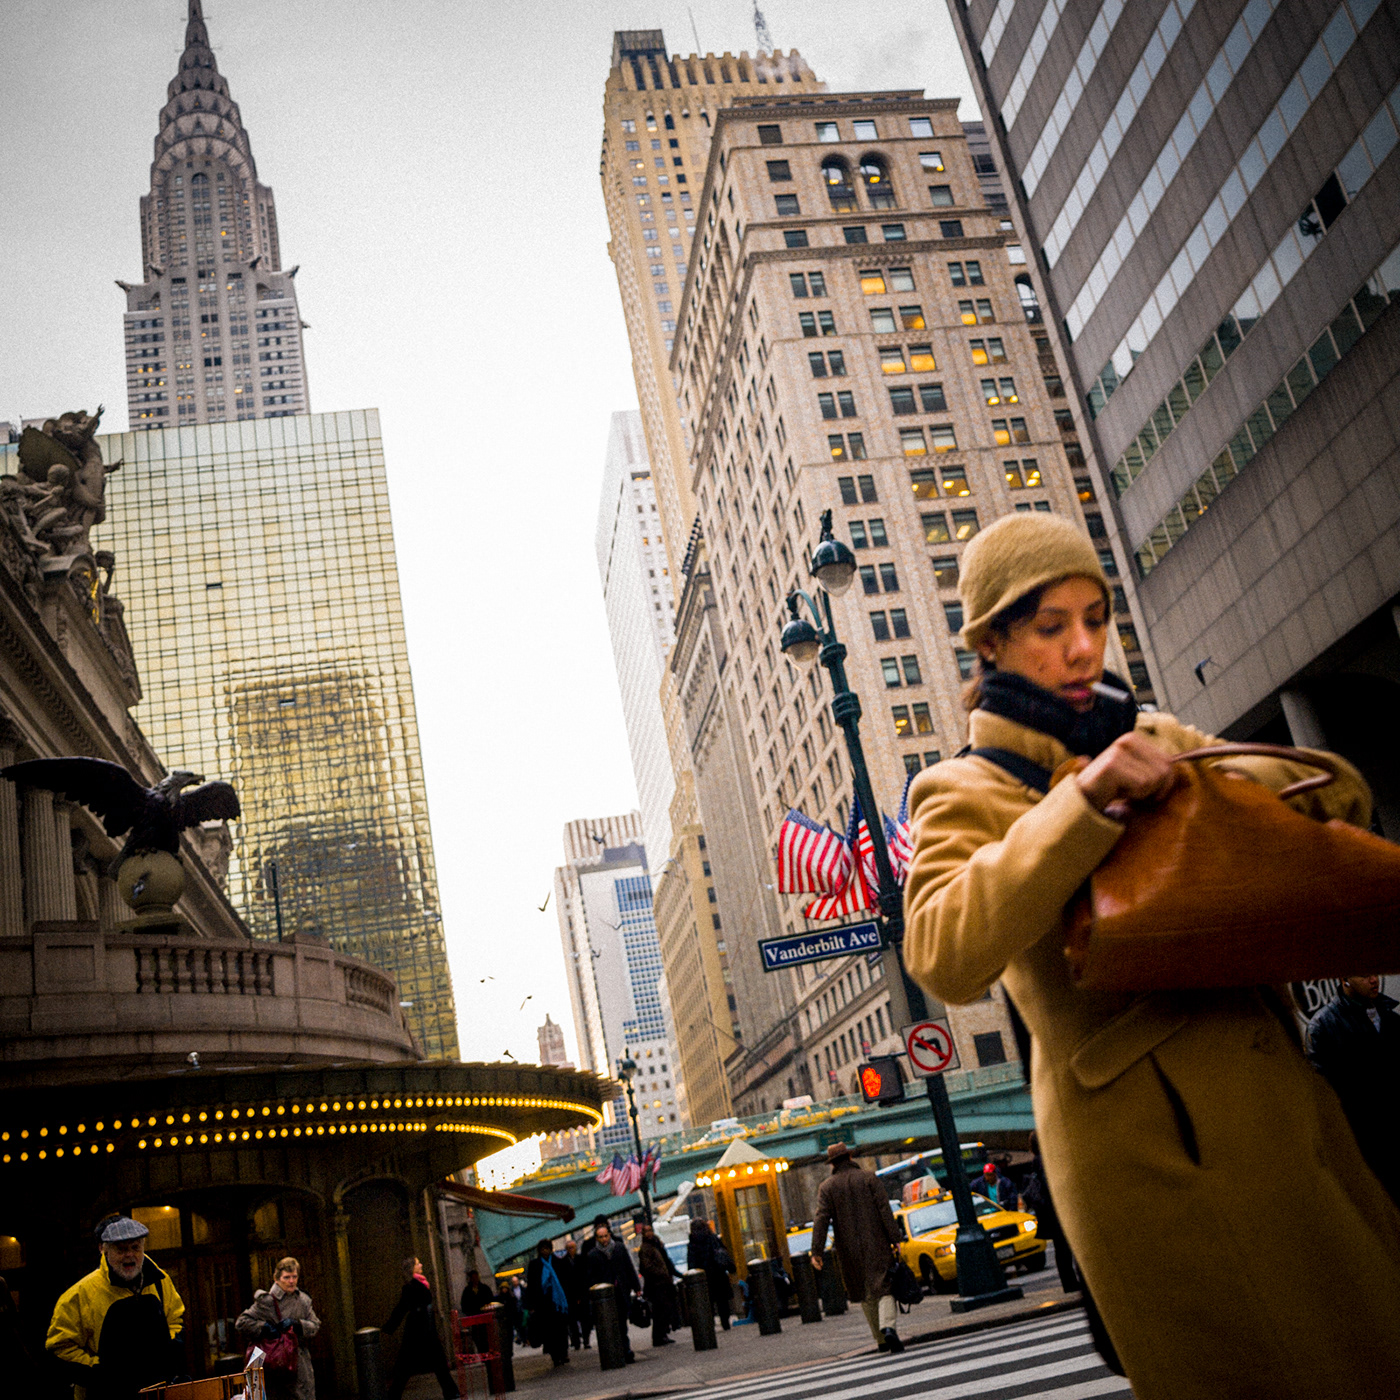 new york city  nyc  Grand Central terminus  commuters railway  e 42nd Street e 42nd street